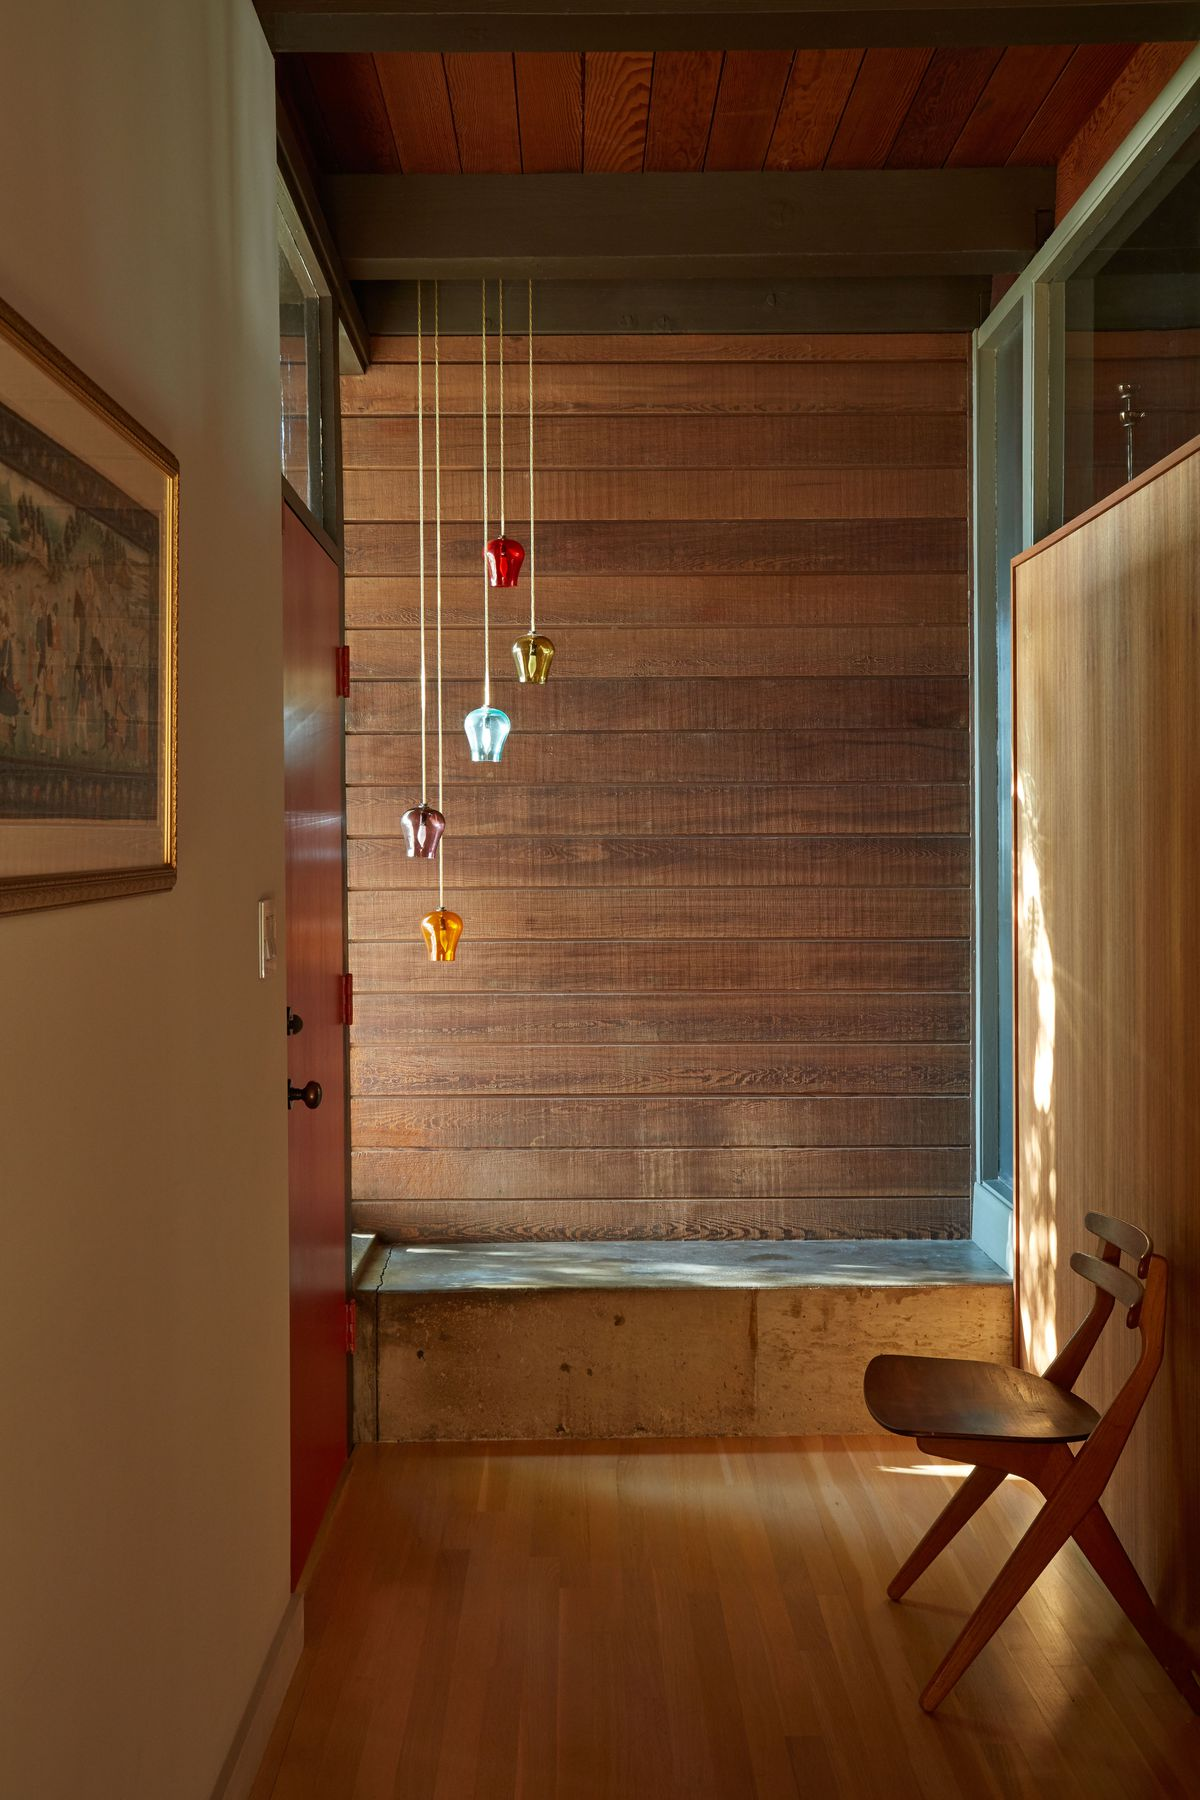 An entryway. The floor is wooden. There are colorful glass objects hanging from strings. A chair sits against a wall.